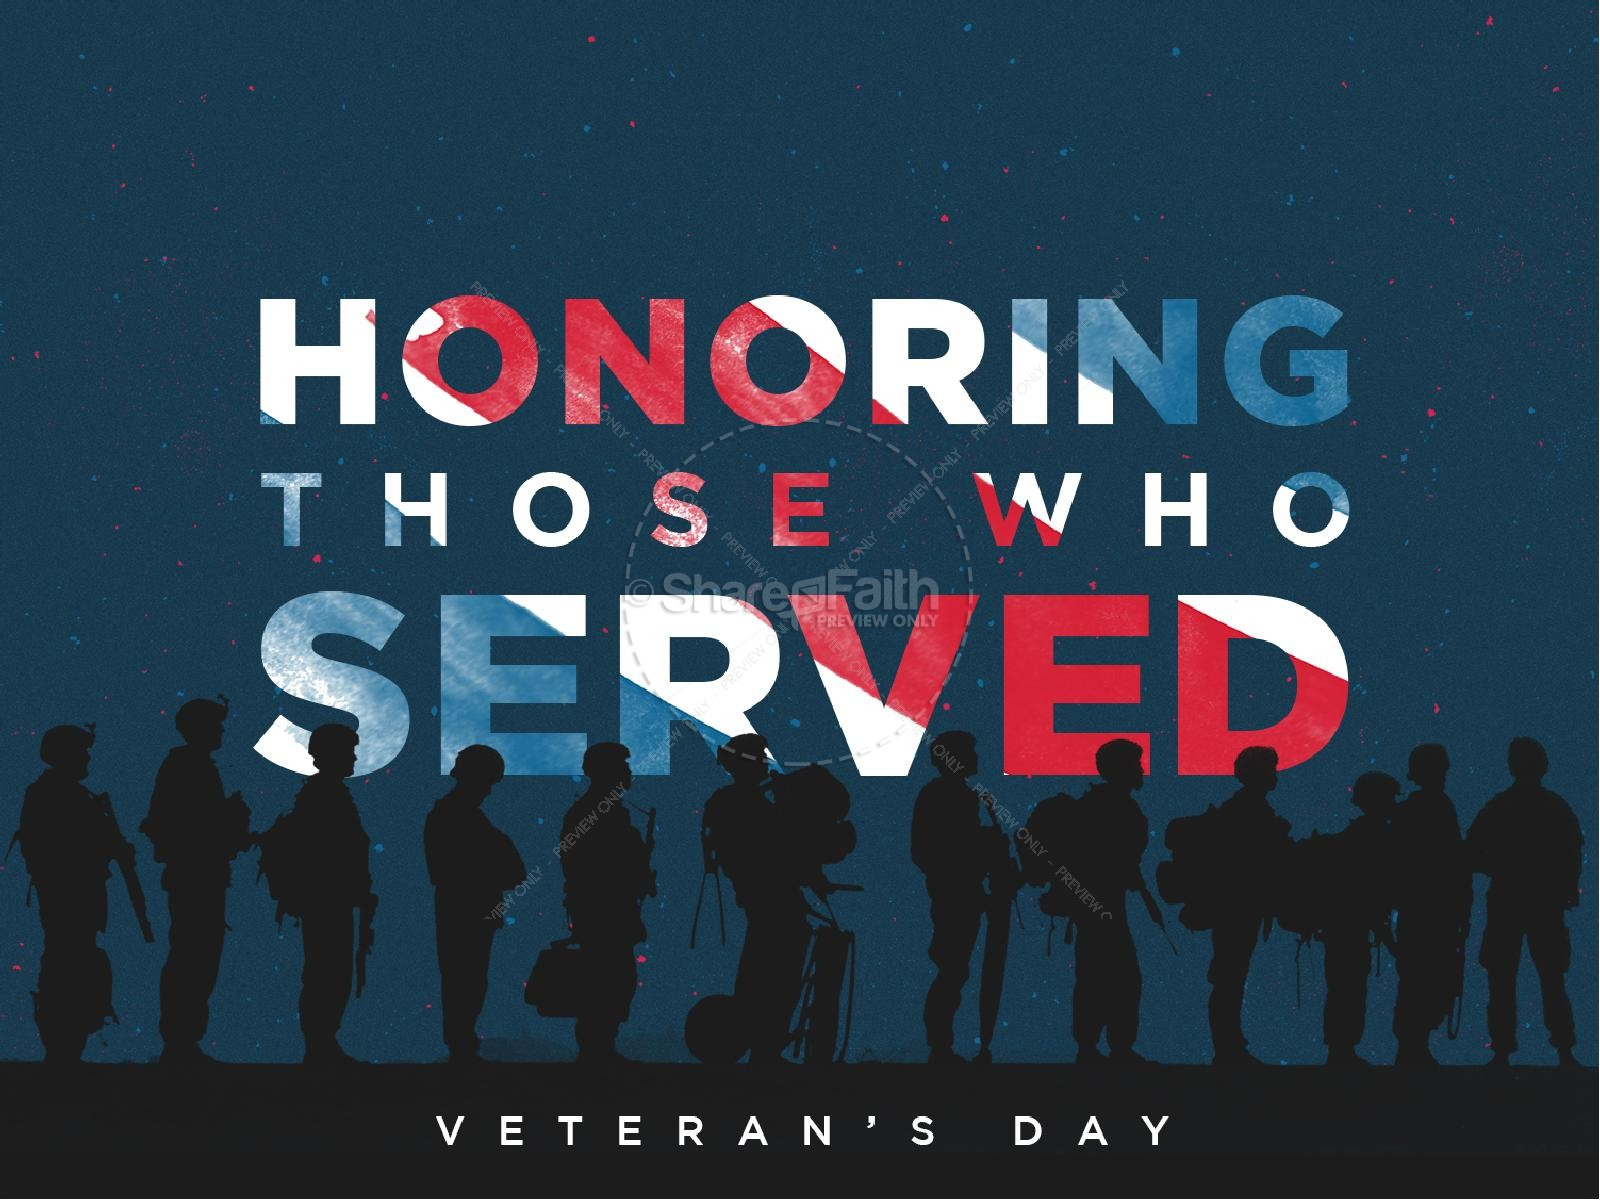 veterans day honoring those who served church service countdown, Modern powerpoint